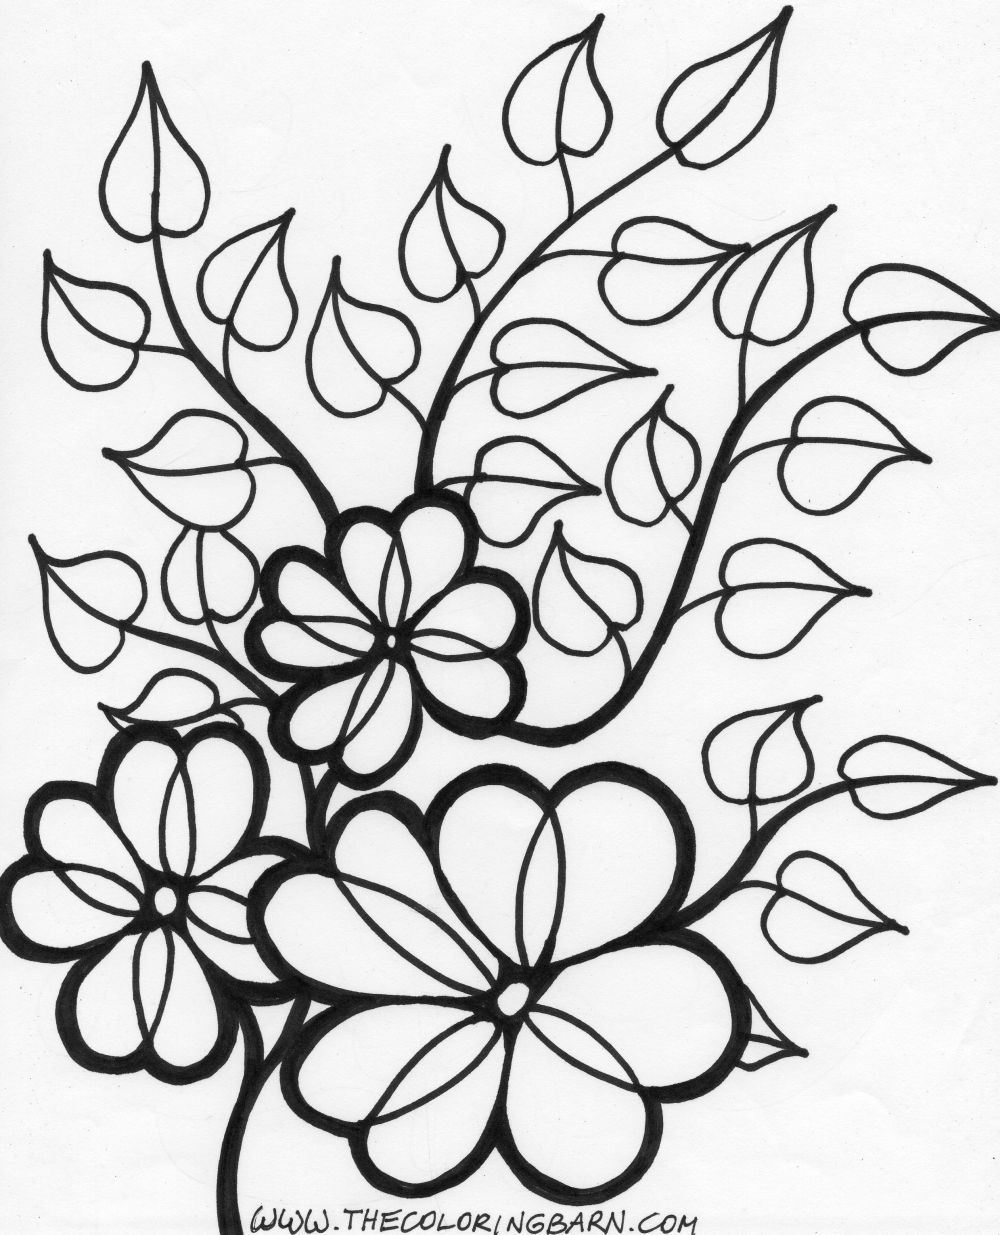 Flower Vines Coloring Page Wild Printable Free Coloring Pages For